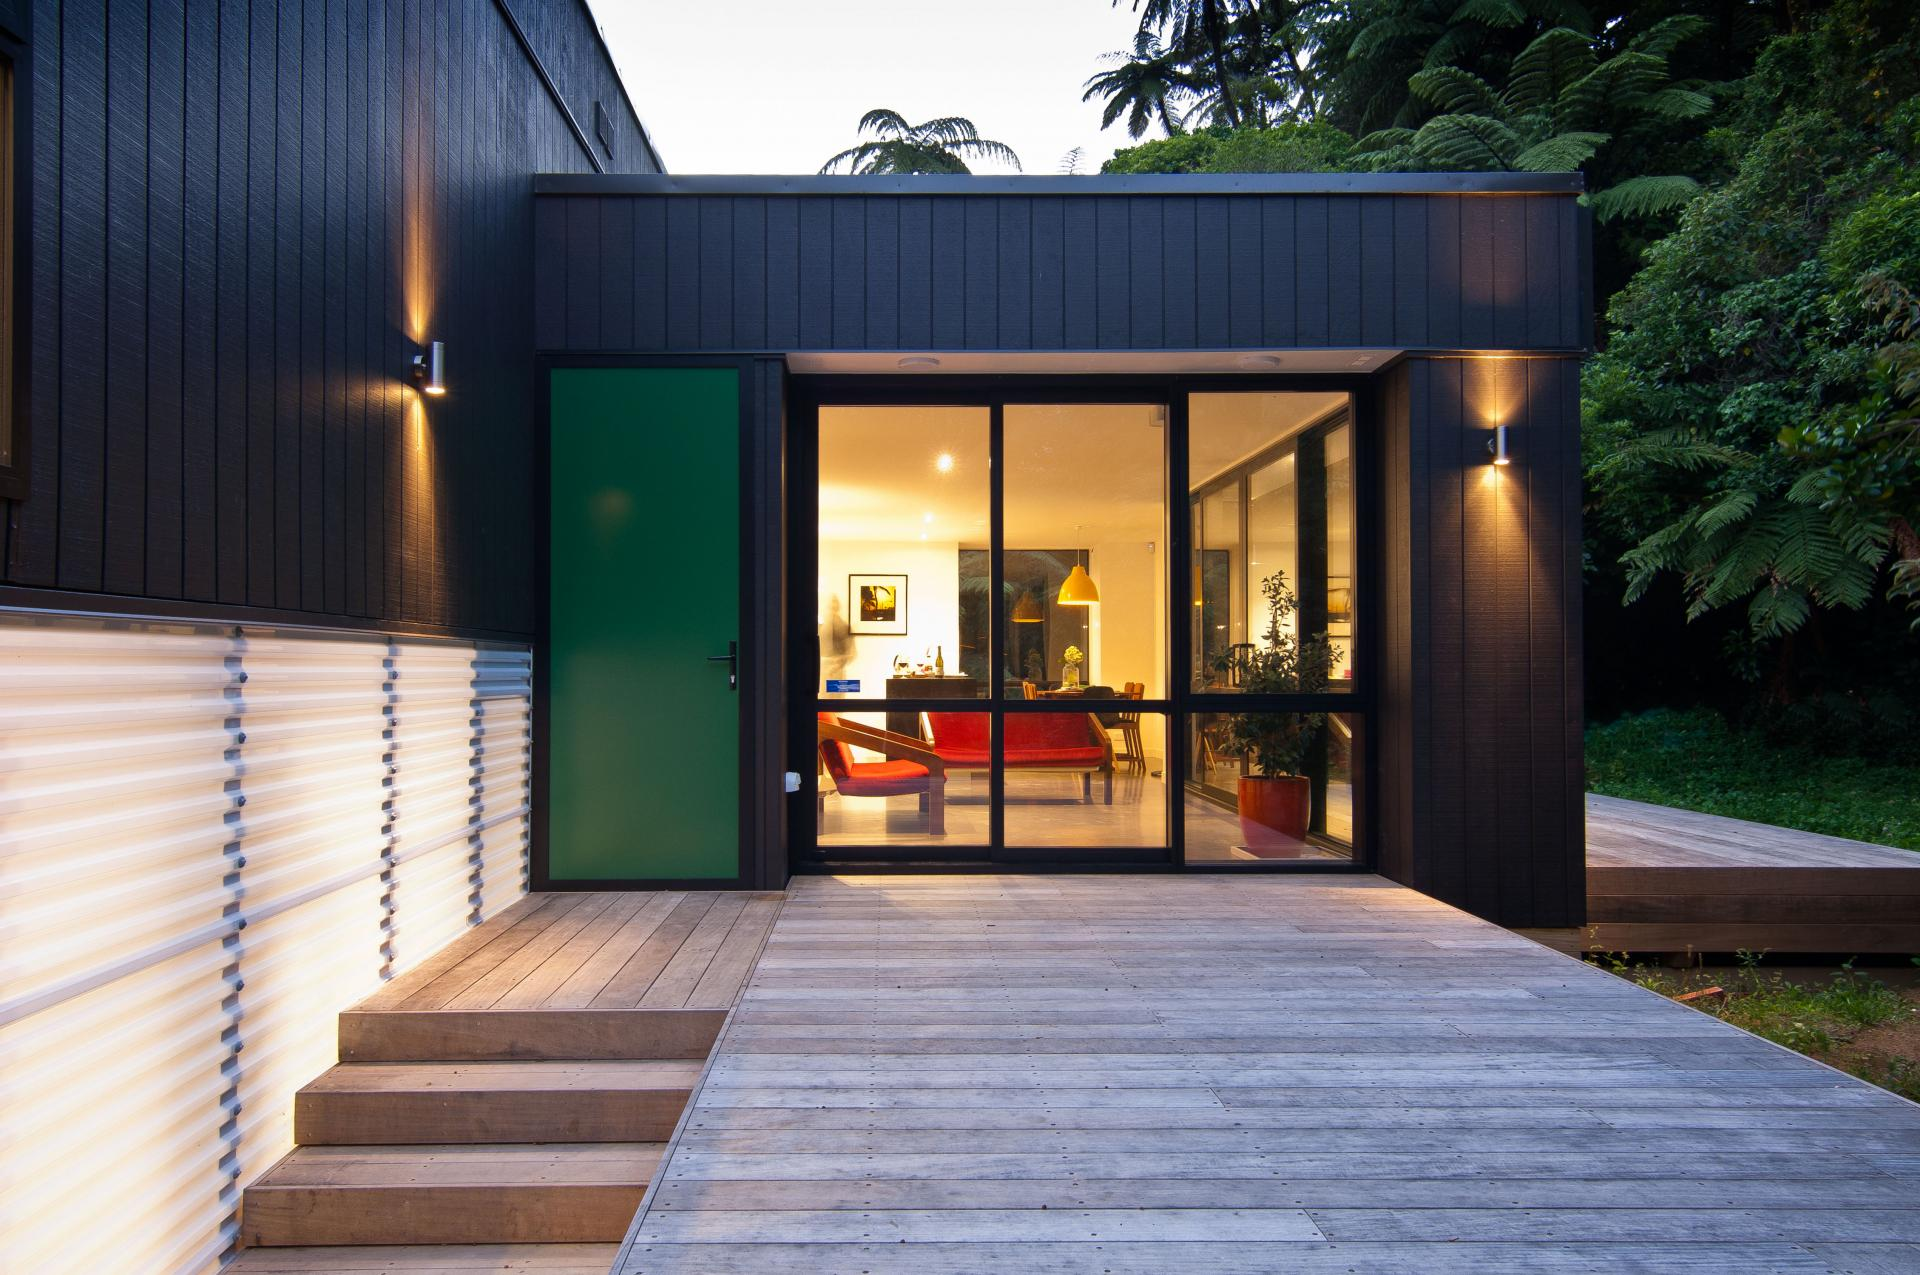 Tiny Home Designs: 'Your House Is Like A Box' Can No Longer Be Considered An